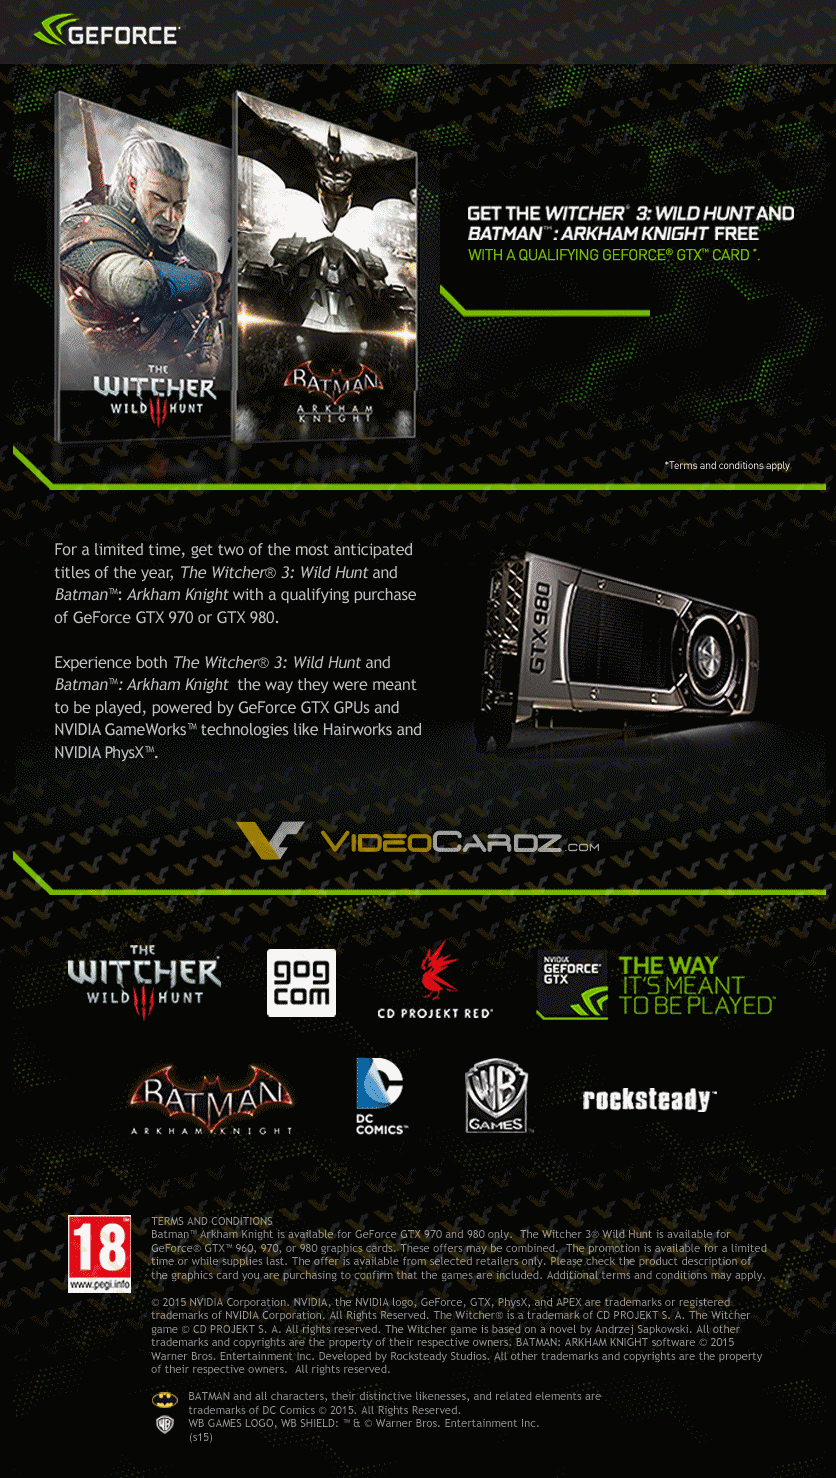 Witcher3 and Batman AK promotion videocardz_com